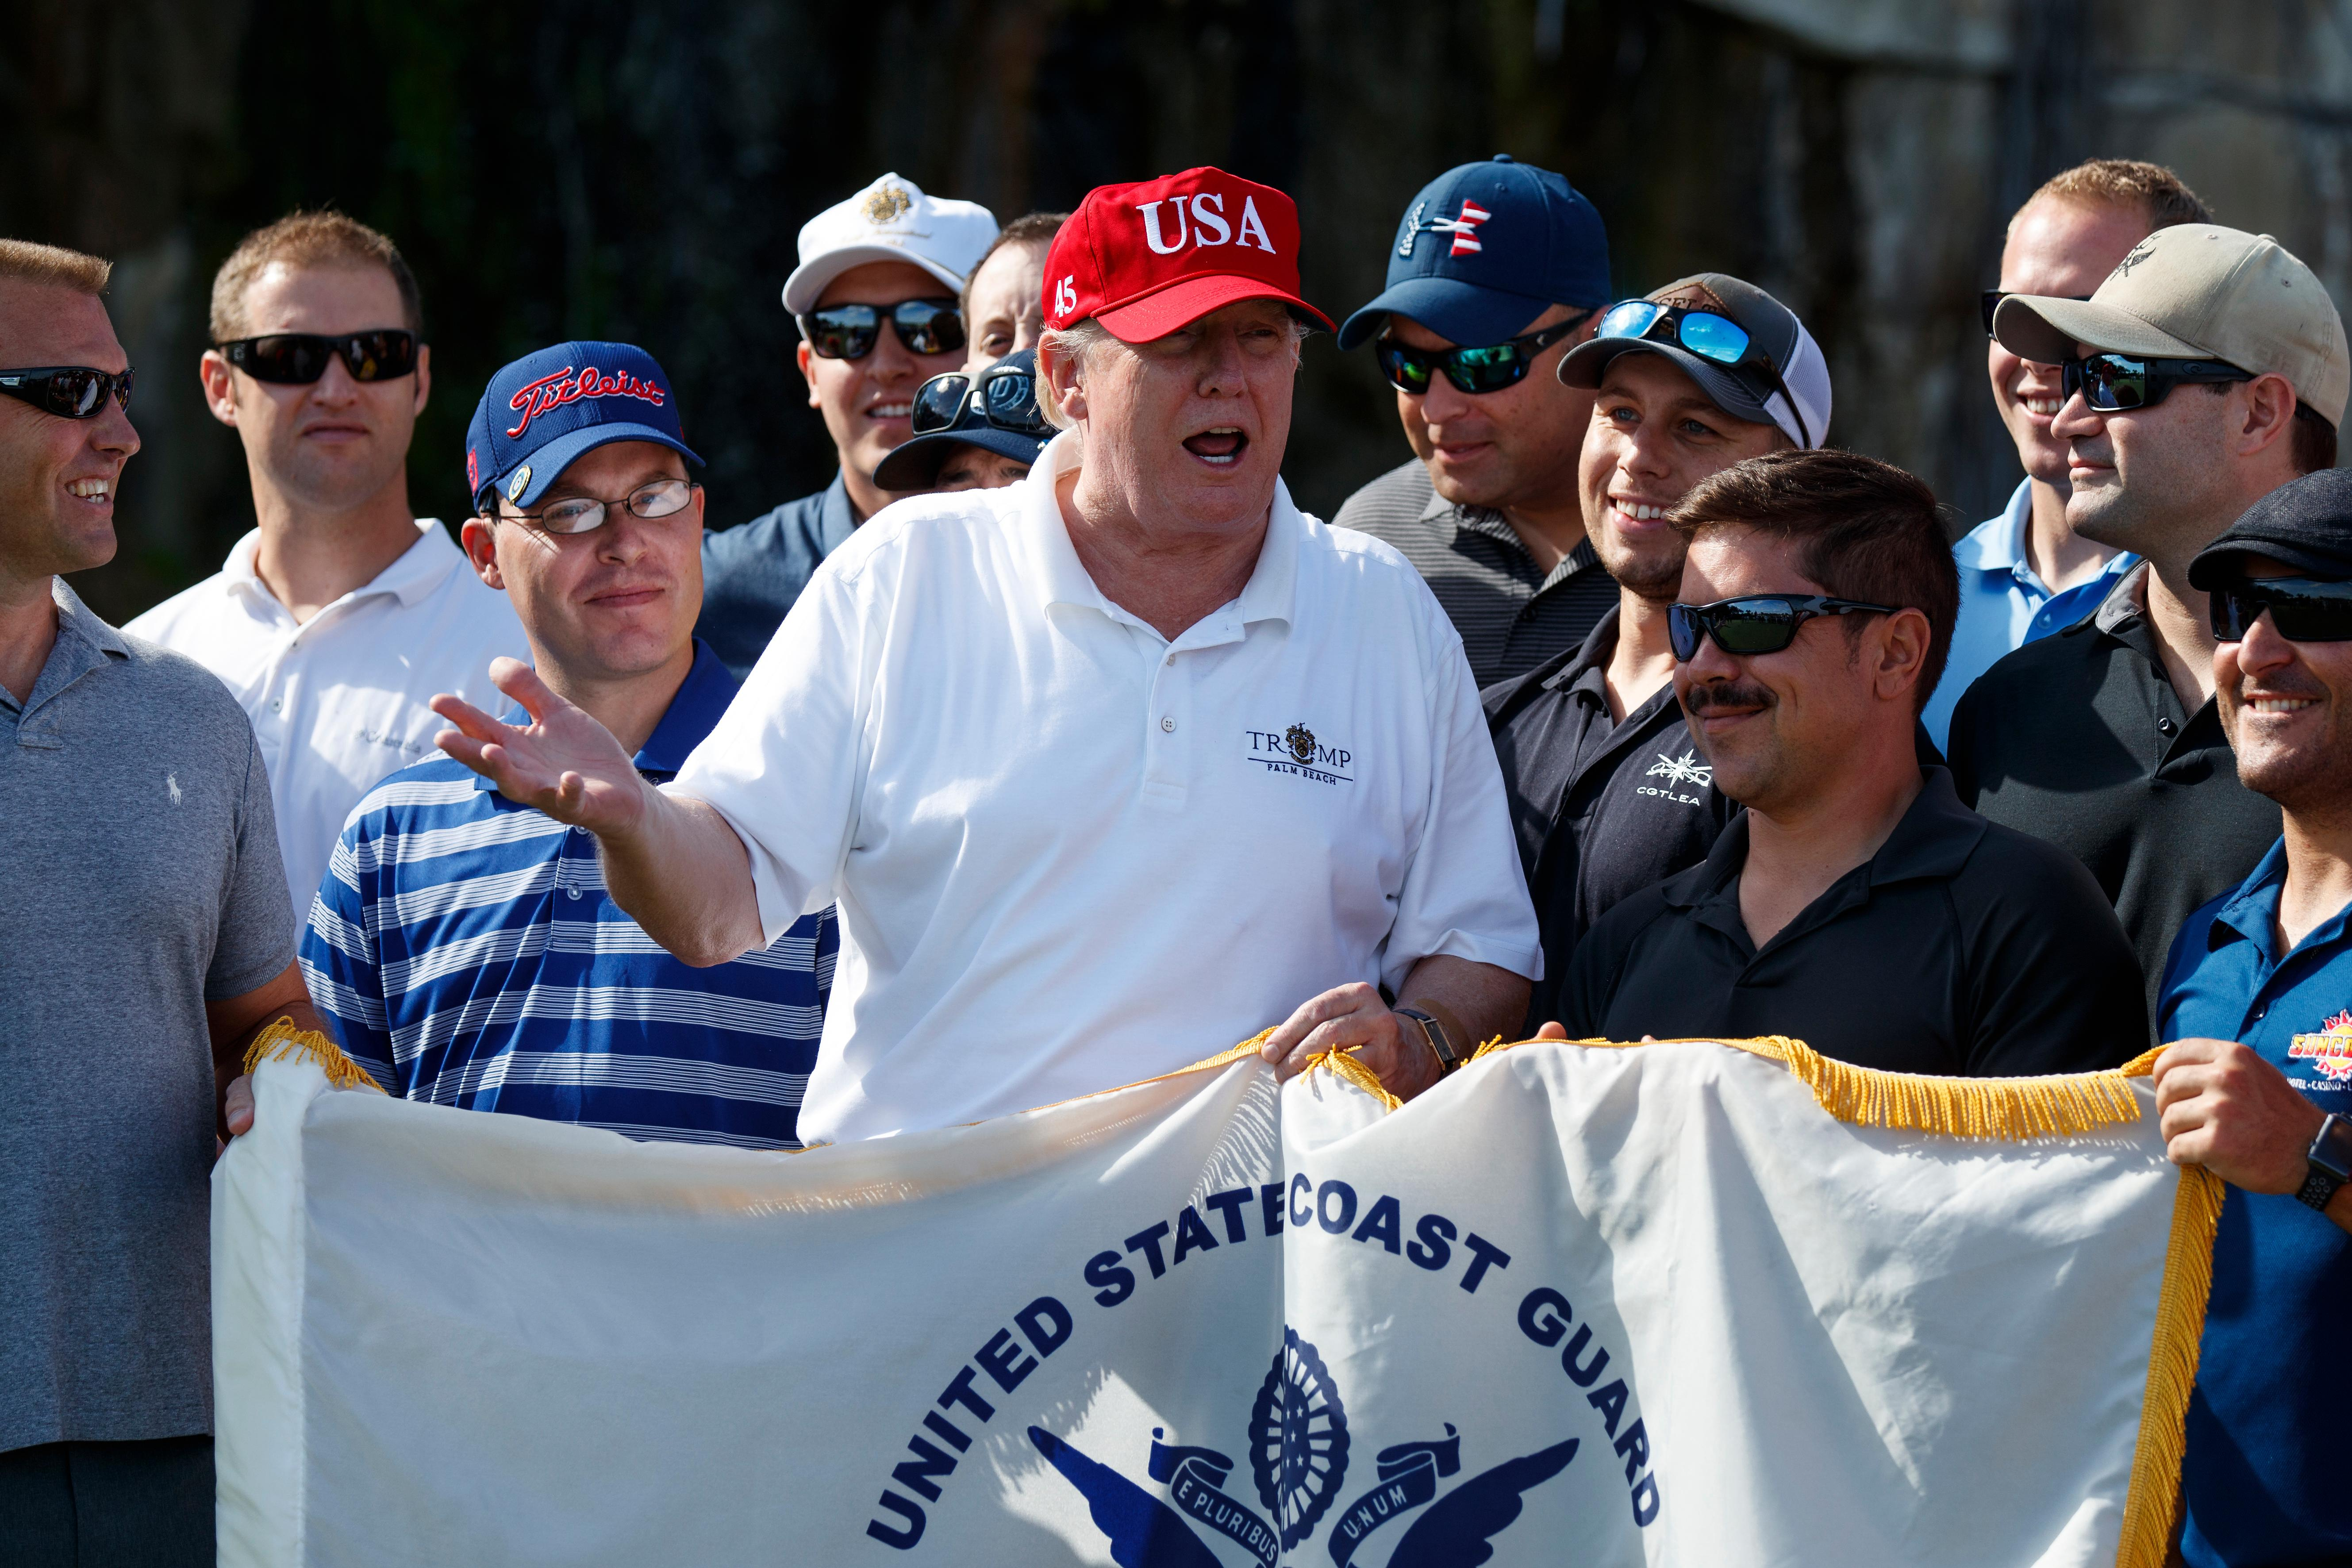 President Donald Trump speaks as he meets with members of the U.S. Coast Guard, who he invited to play golf, at Trump International Golf Club, Friday, Dec. 29, 2017, in West Palm Beach, Fla. (AP Photo/Evan Vucci)